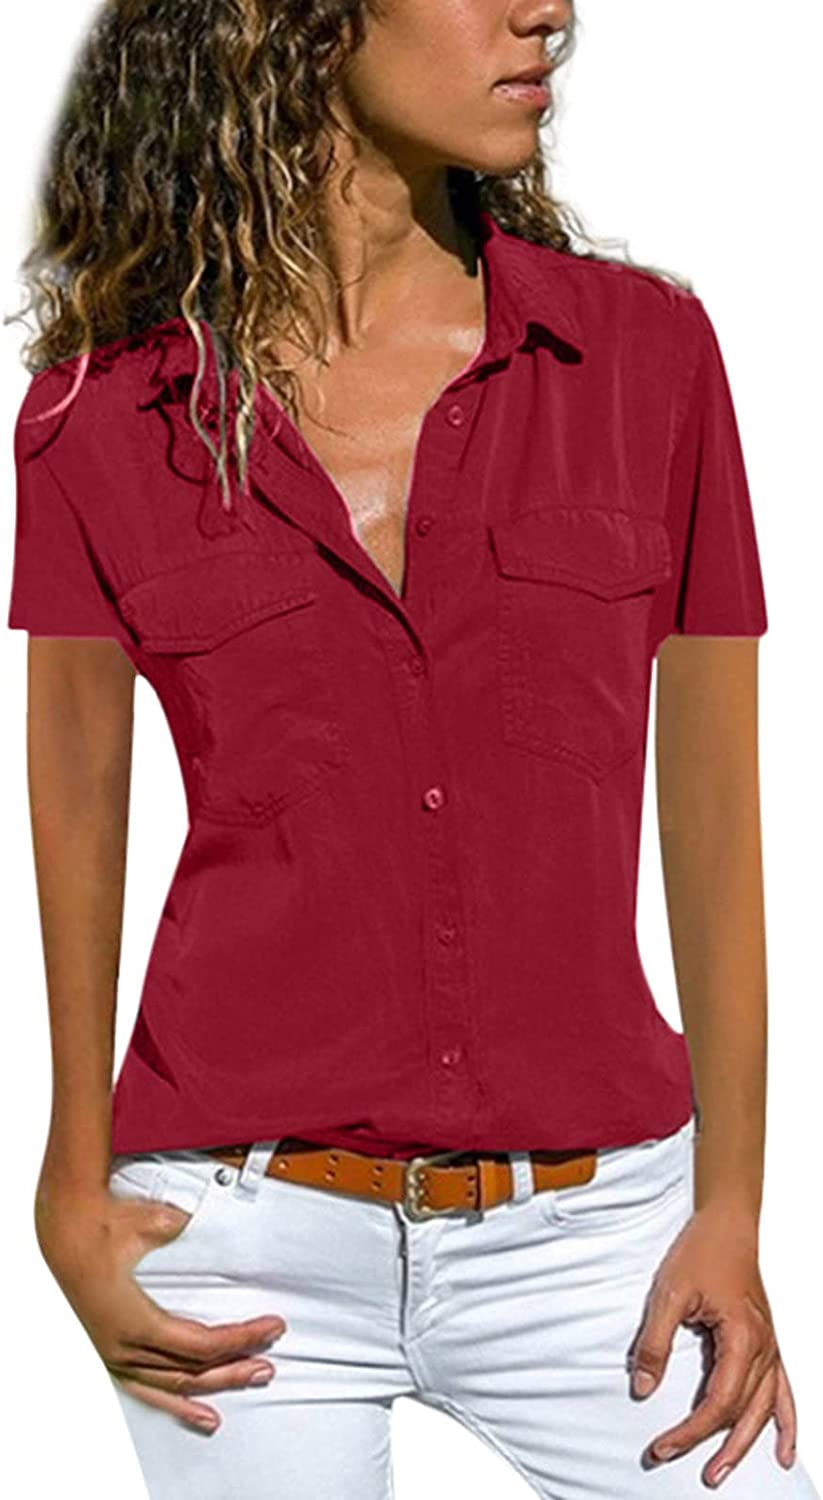 Button Down Blouses for Women,Women's V Neck Shirts Shorts Sleeve Blouse Roll Up Cuffed Sleeve Casual Work Plain Tops D